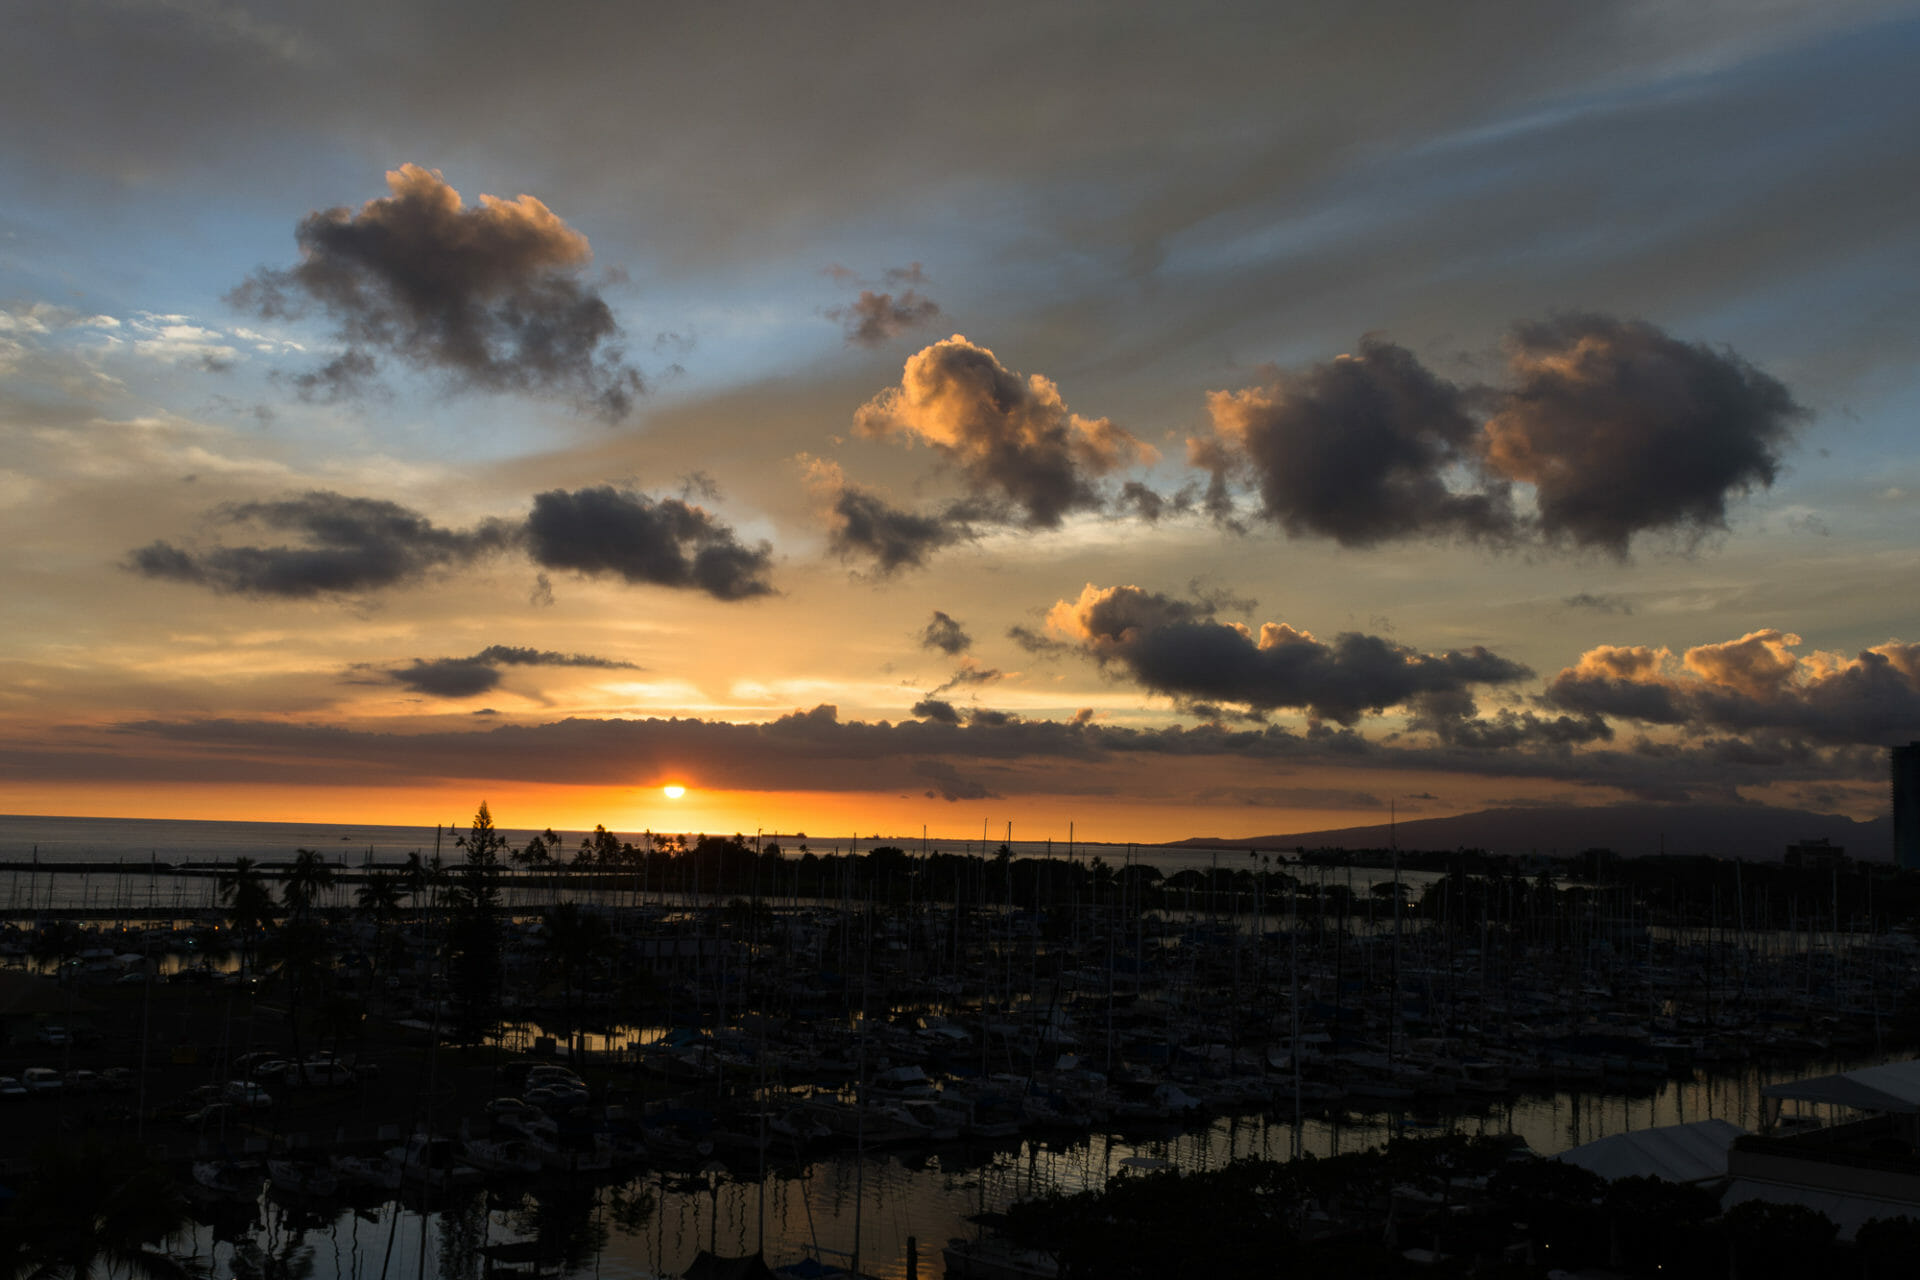 Oahu sunset with the harbor in foreground